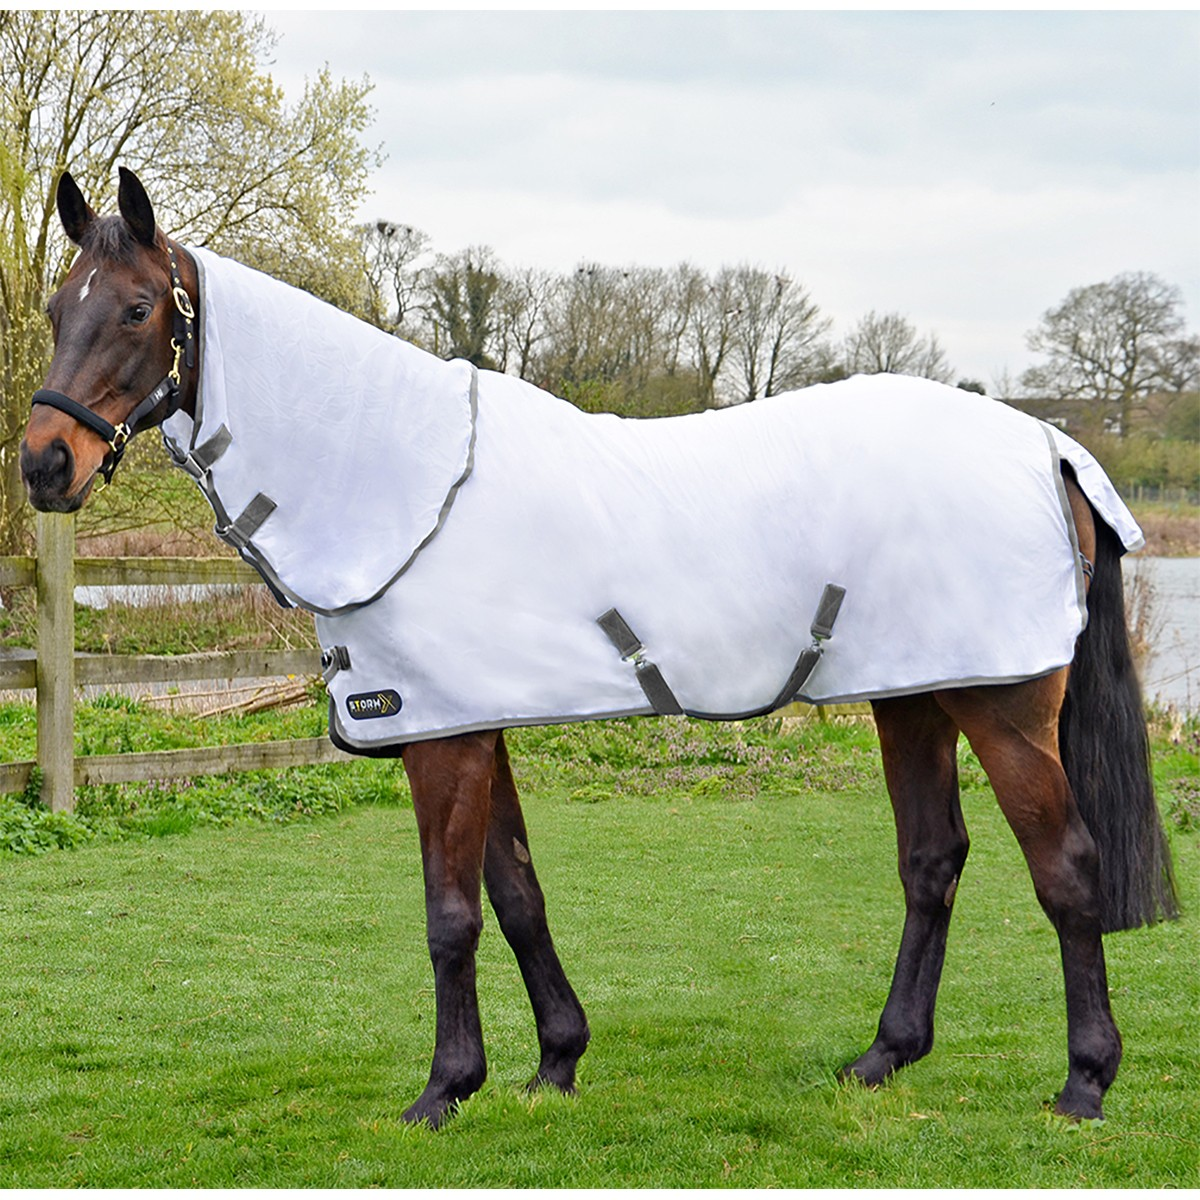 Hy StormX Original Warrior Fly Rug With Detachable Neck